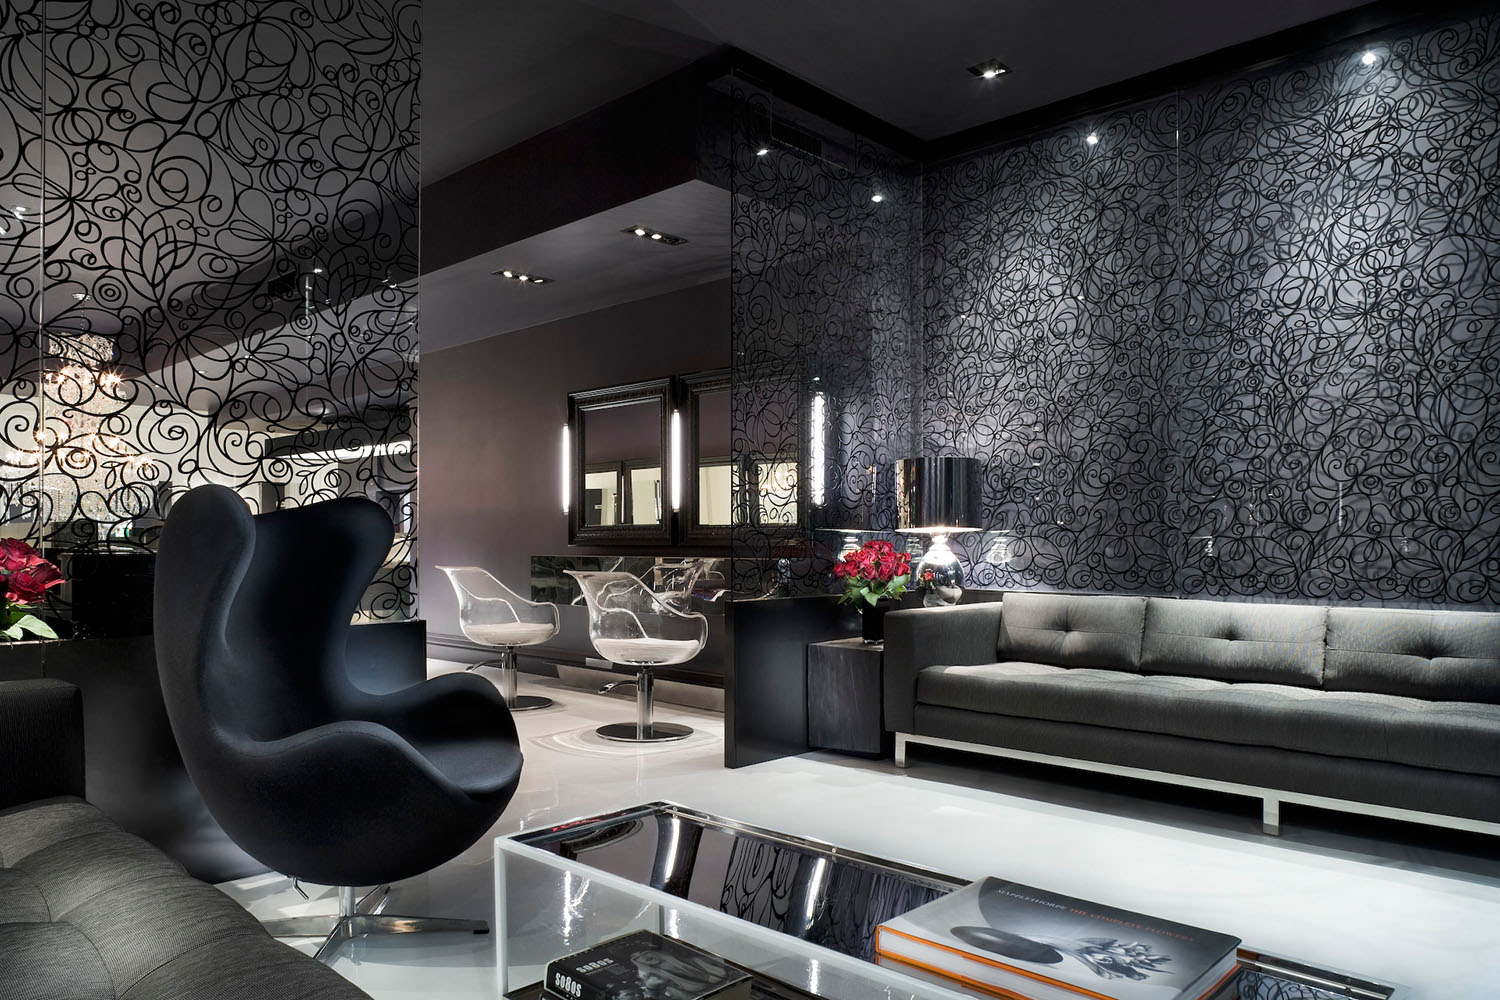 luxury hair salon waiting area with black couches, glass tables and crafted pane windows